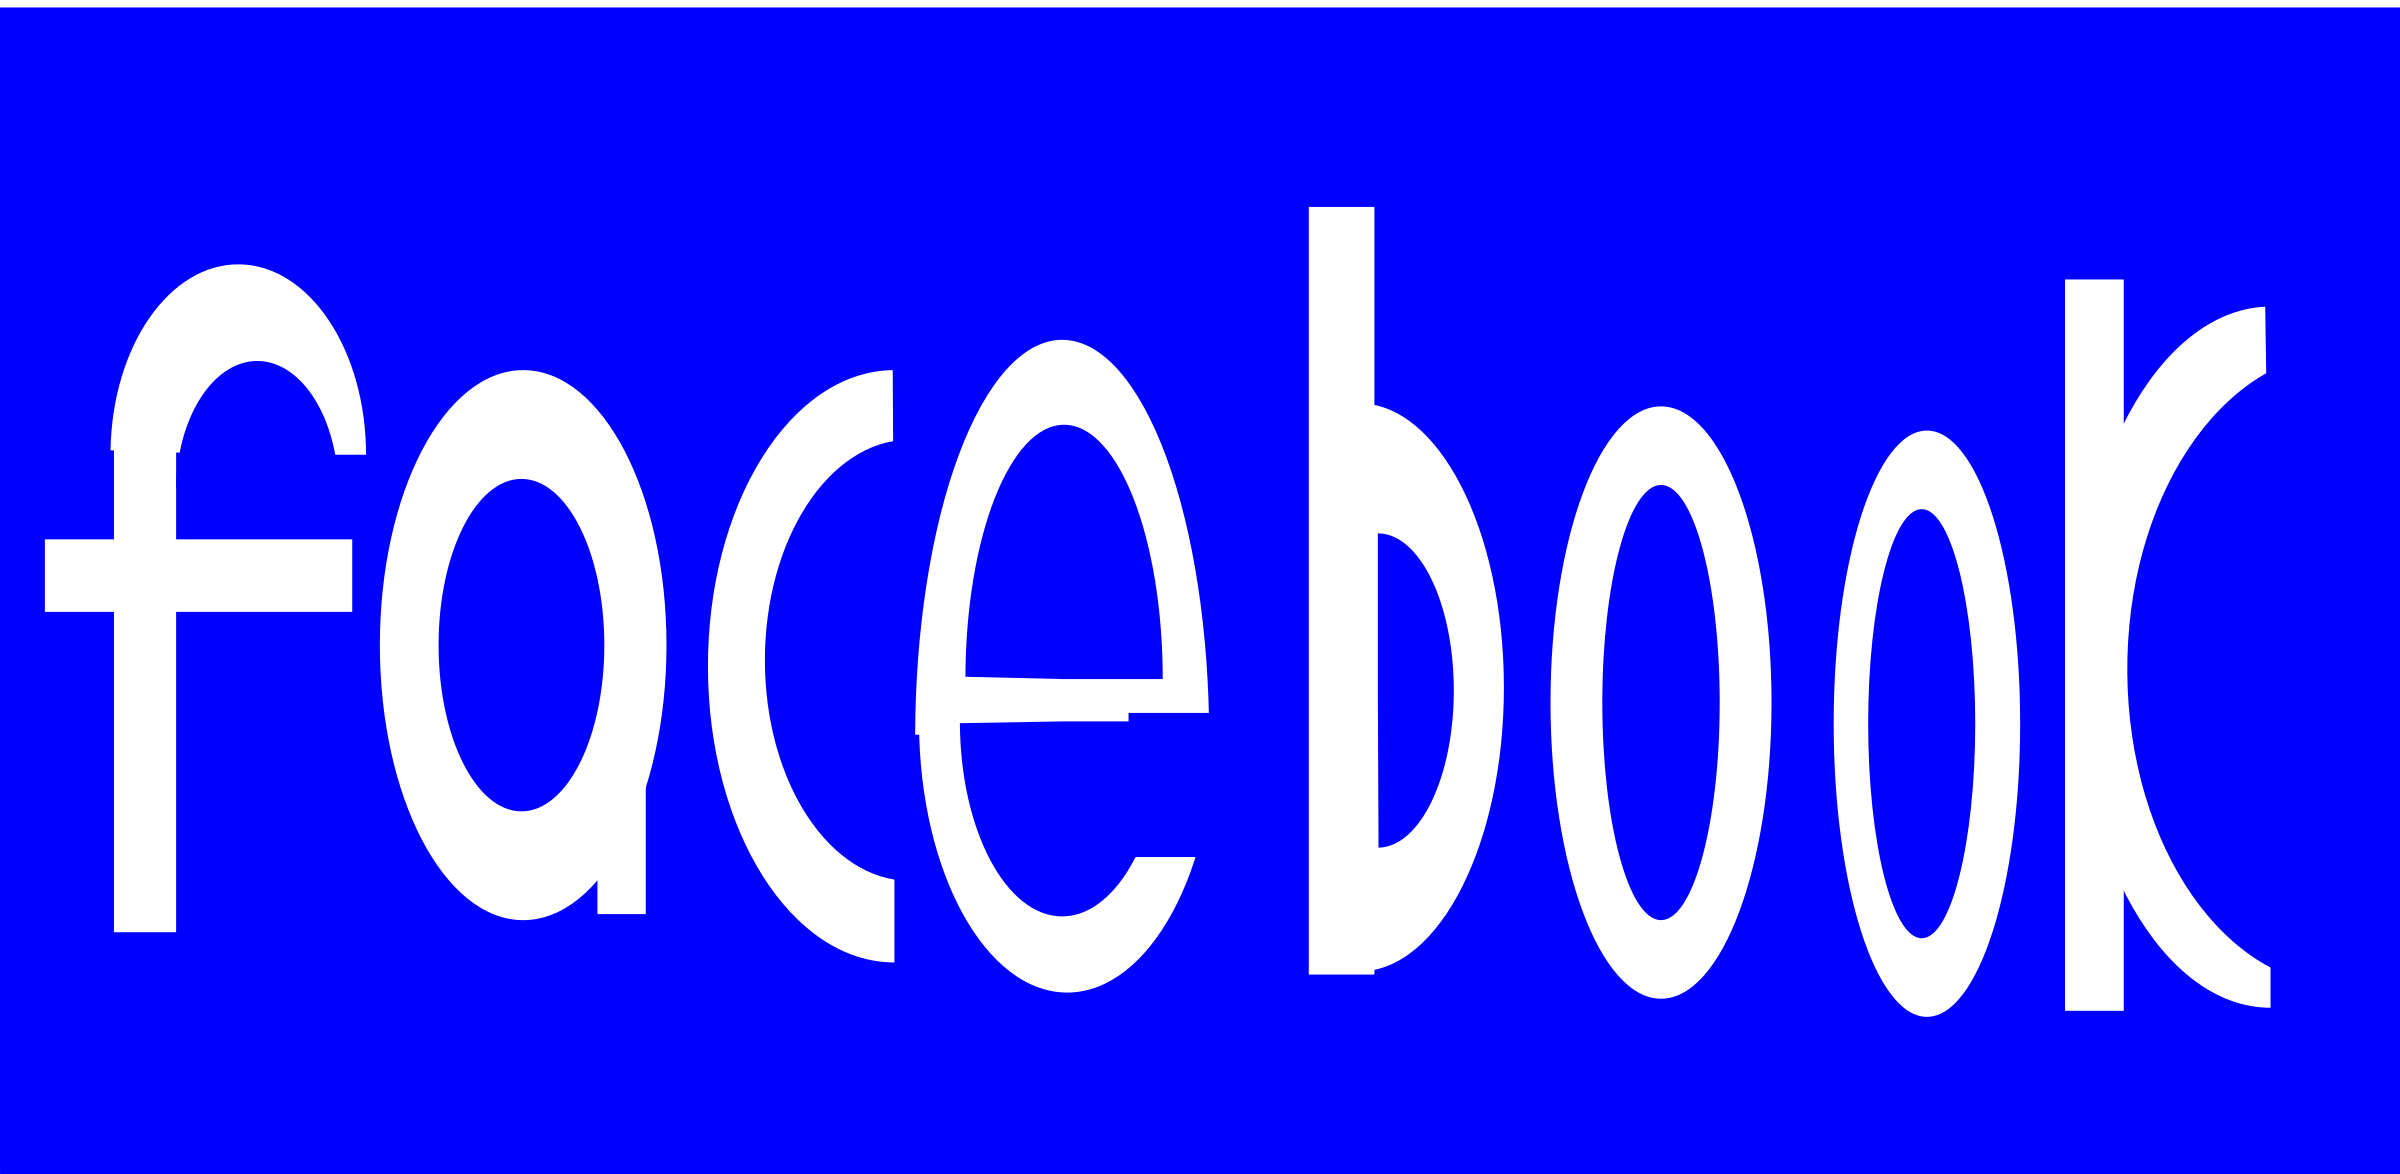 facebook by PeterBrough